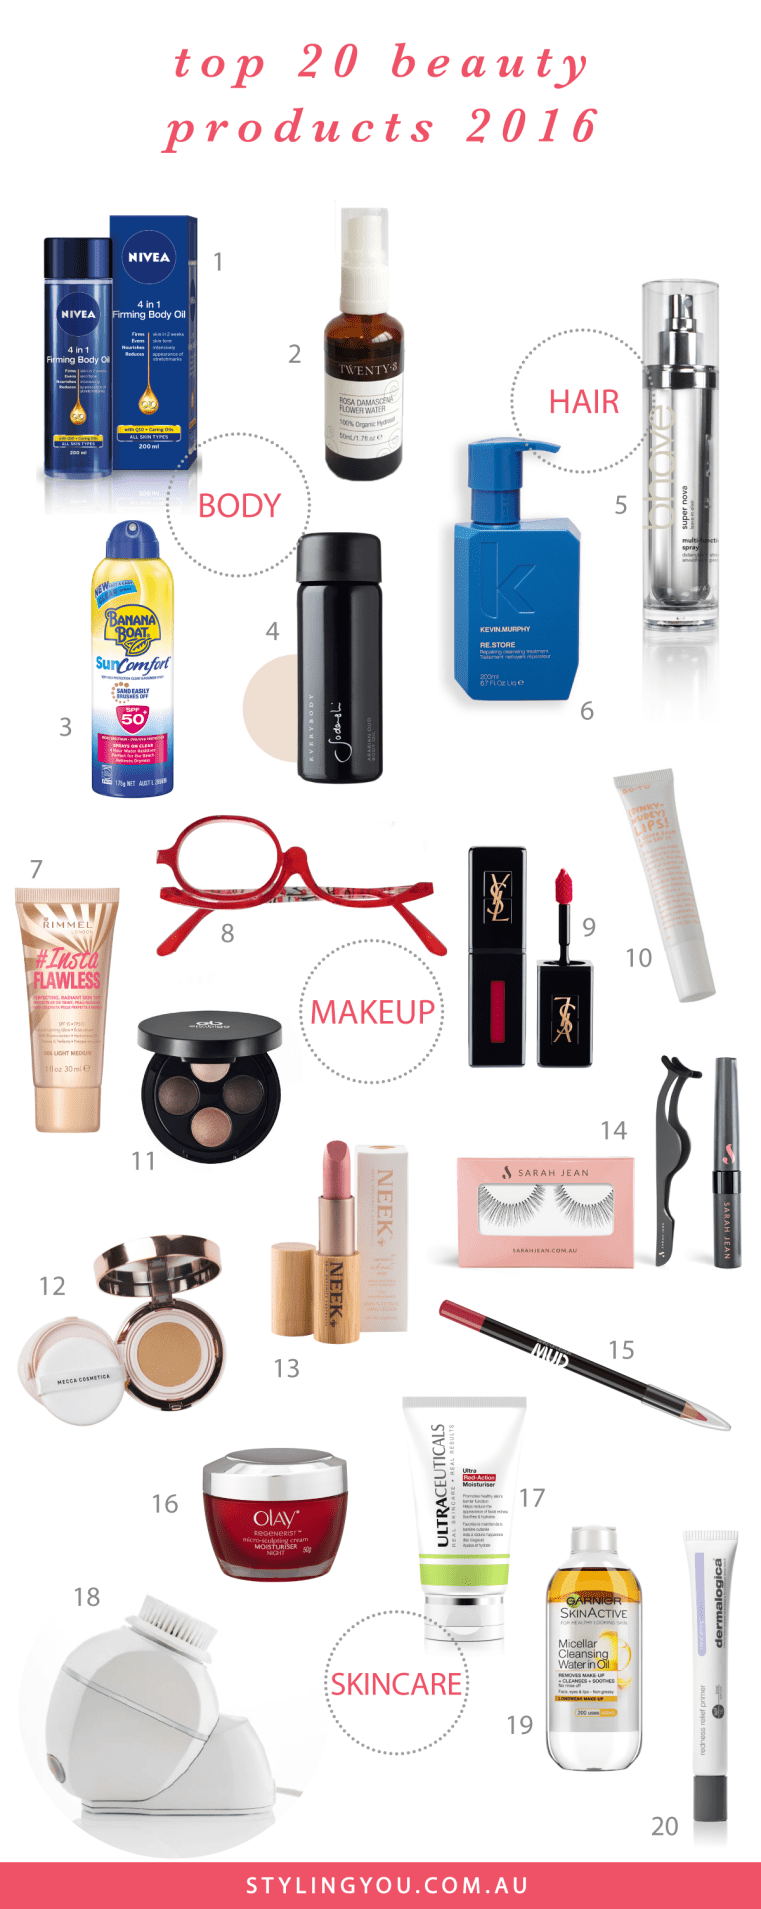 Styling You's top 20 beauty products 2016